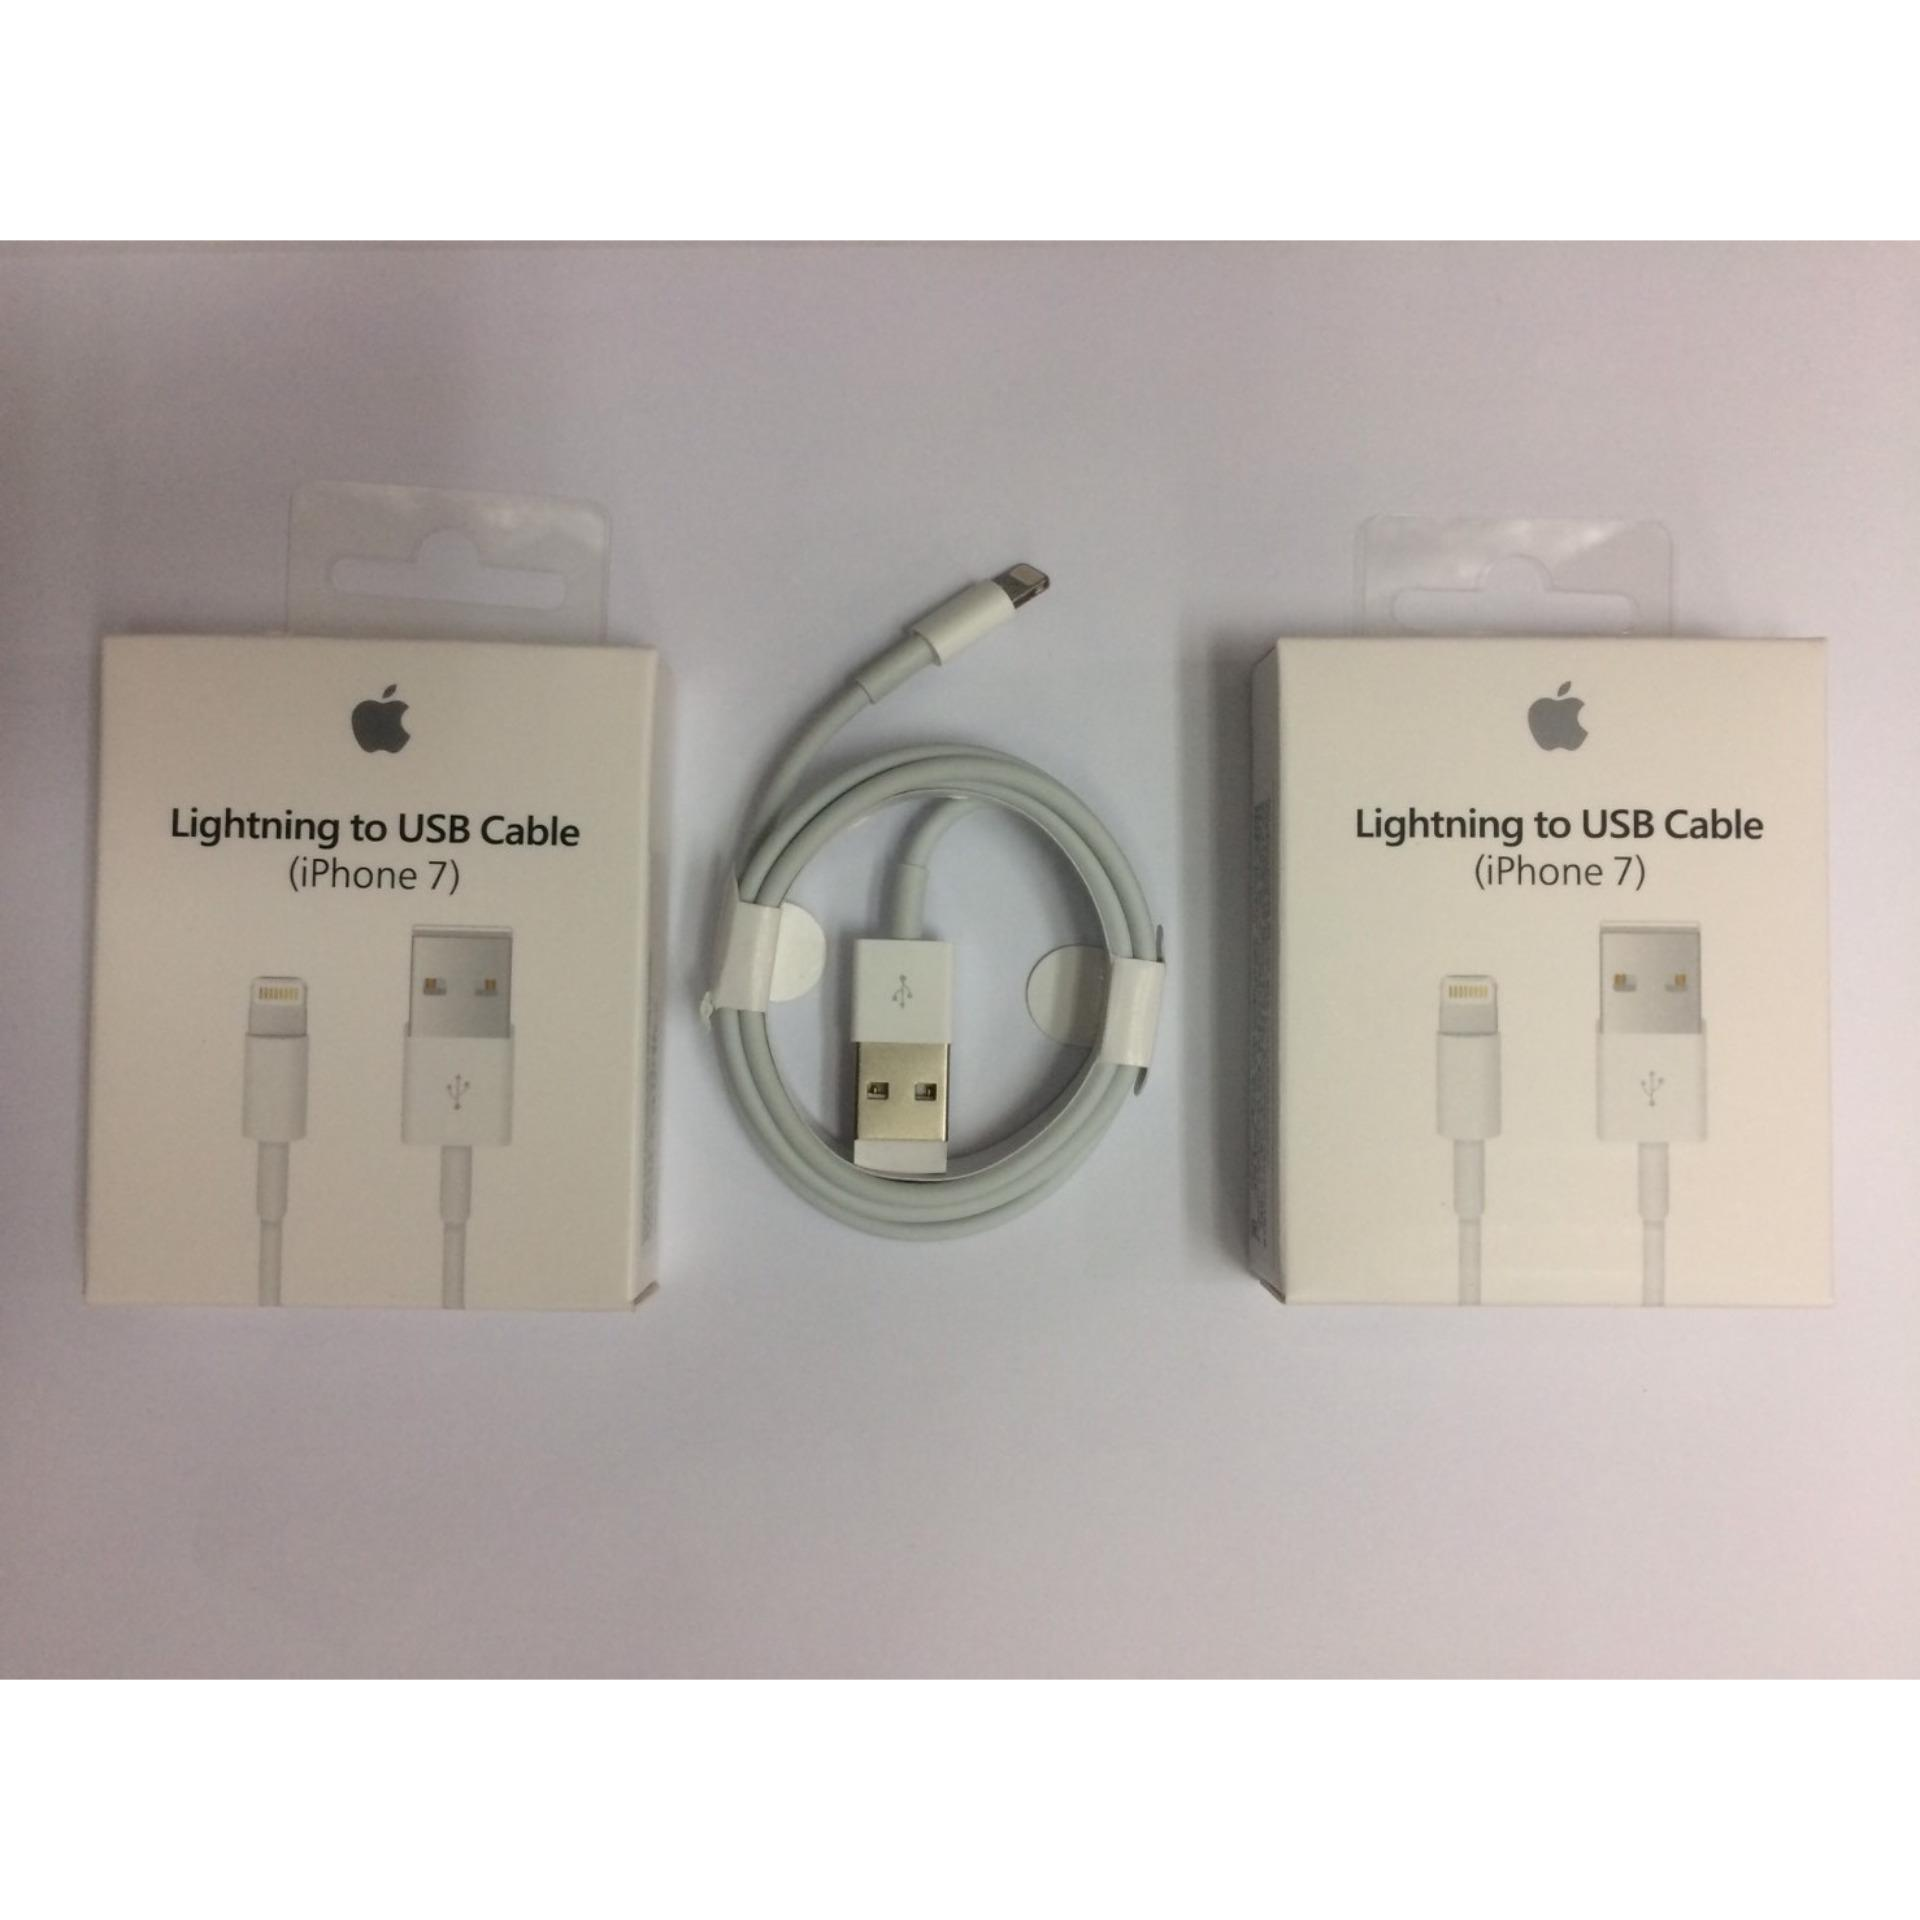 Beli Kabel Charge Iphone 5 6 7 Original Kabel Data Usb Charger Bergaransi Cicilan